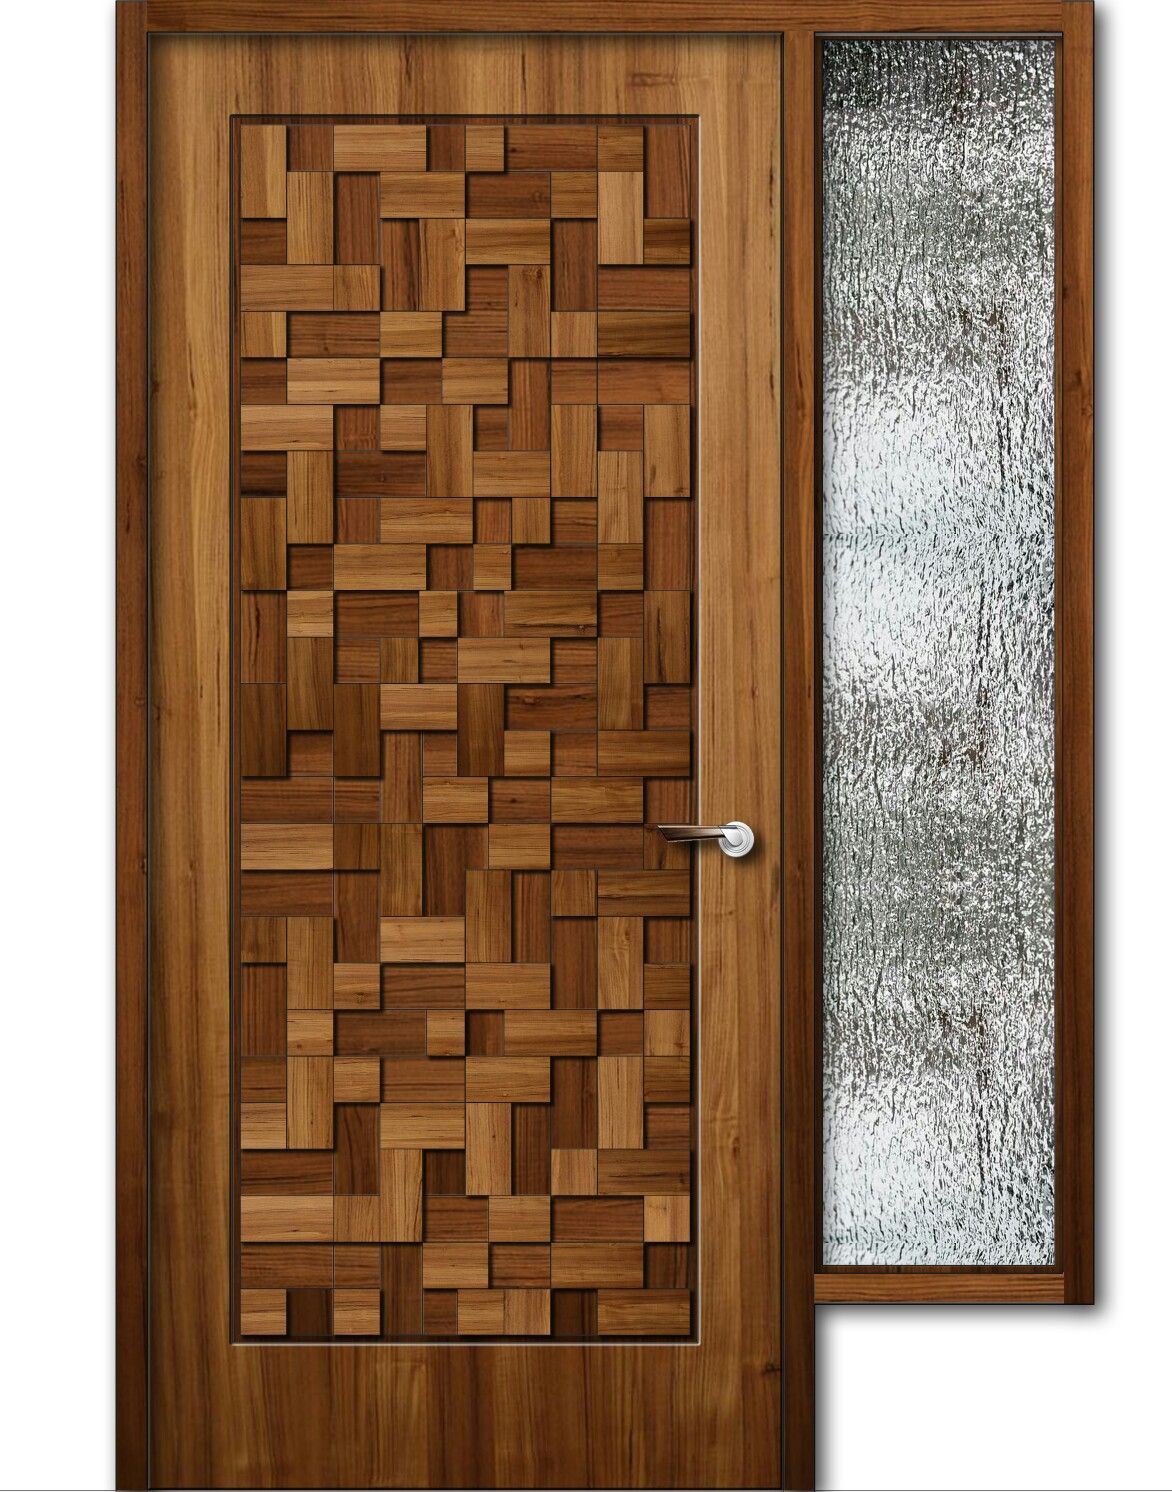 Teak wood finish wooden door with window 8feet height for Wooden main door design catalogue